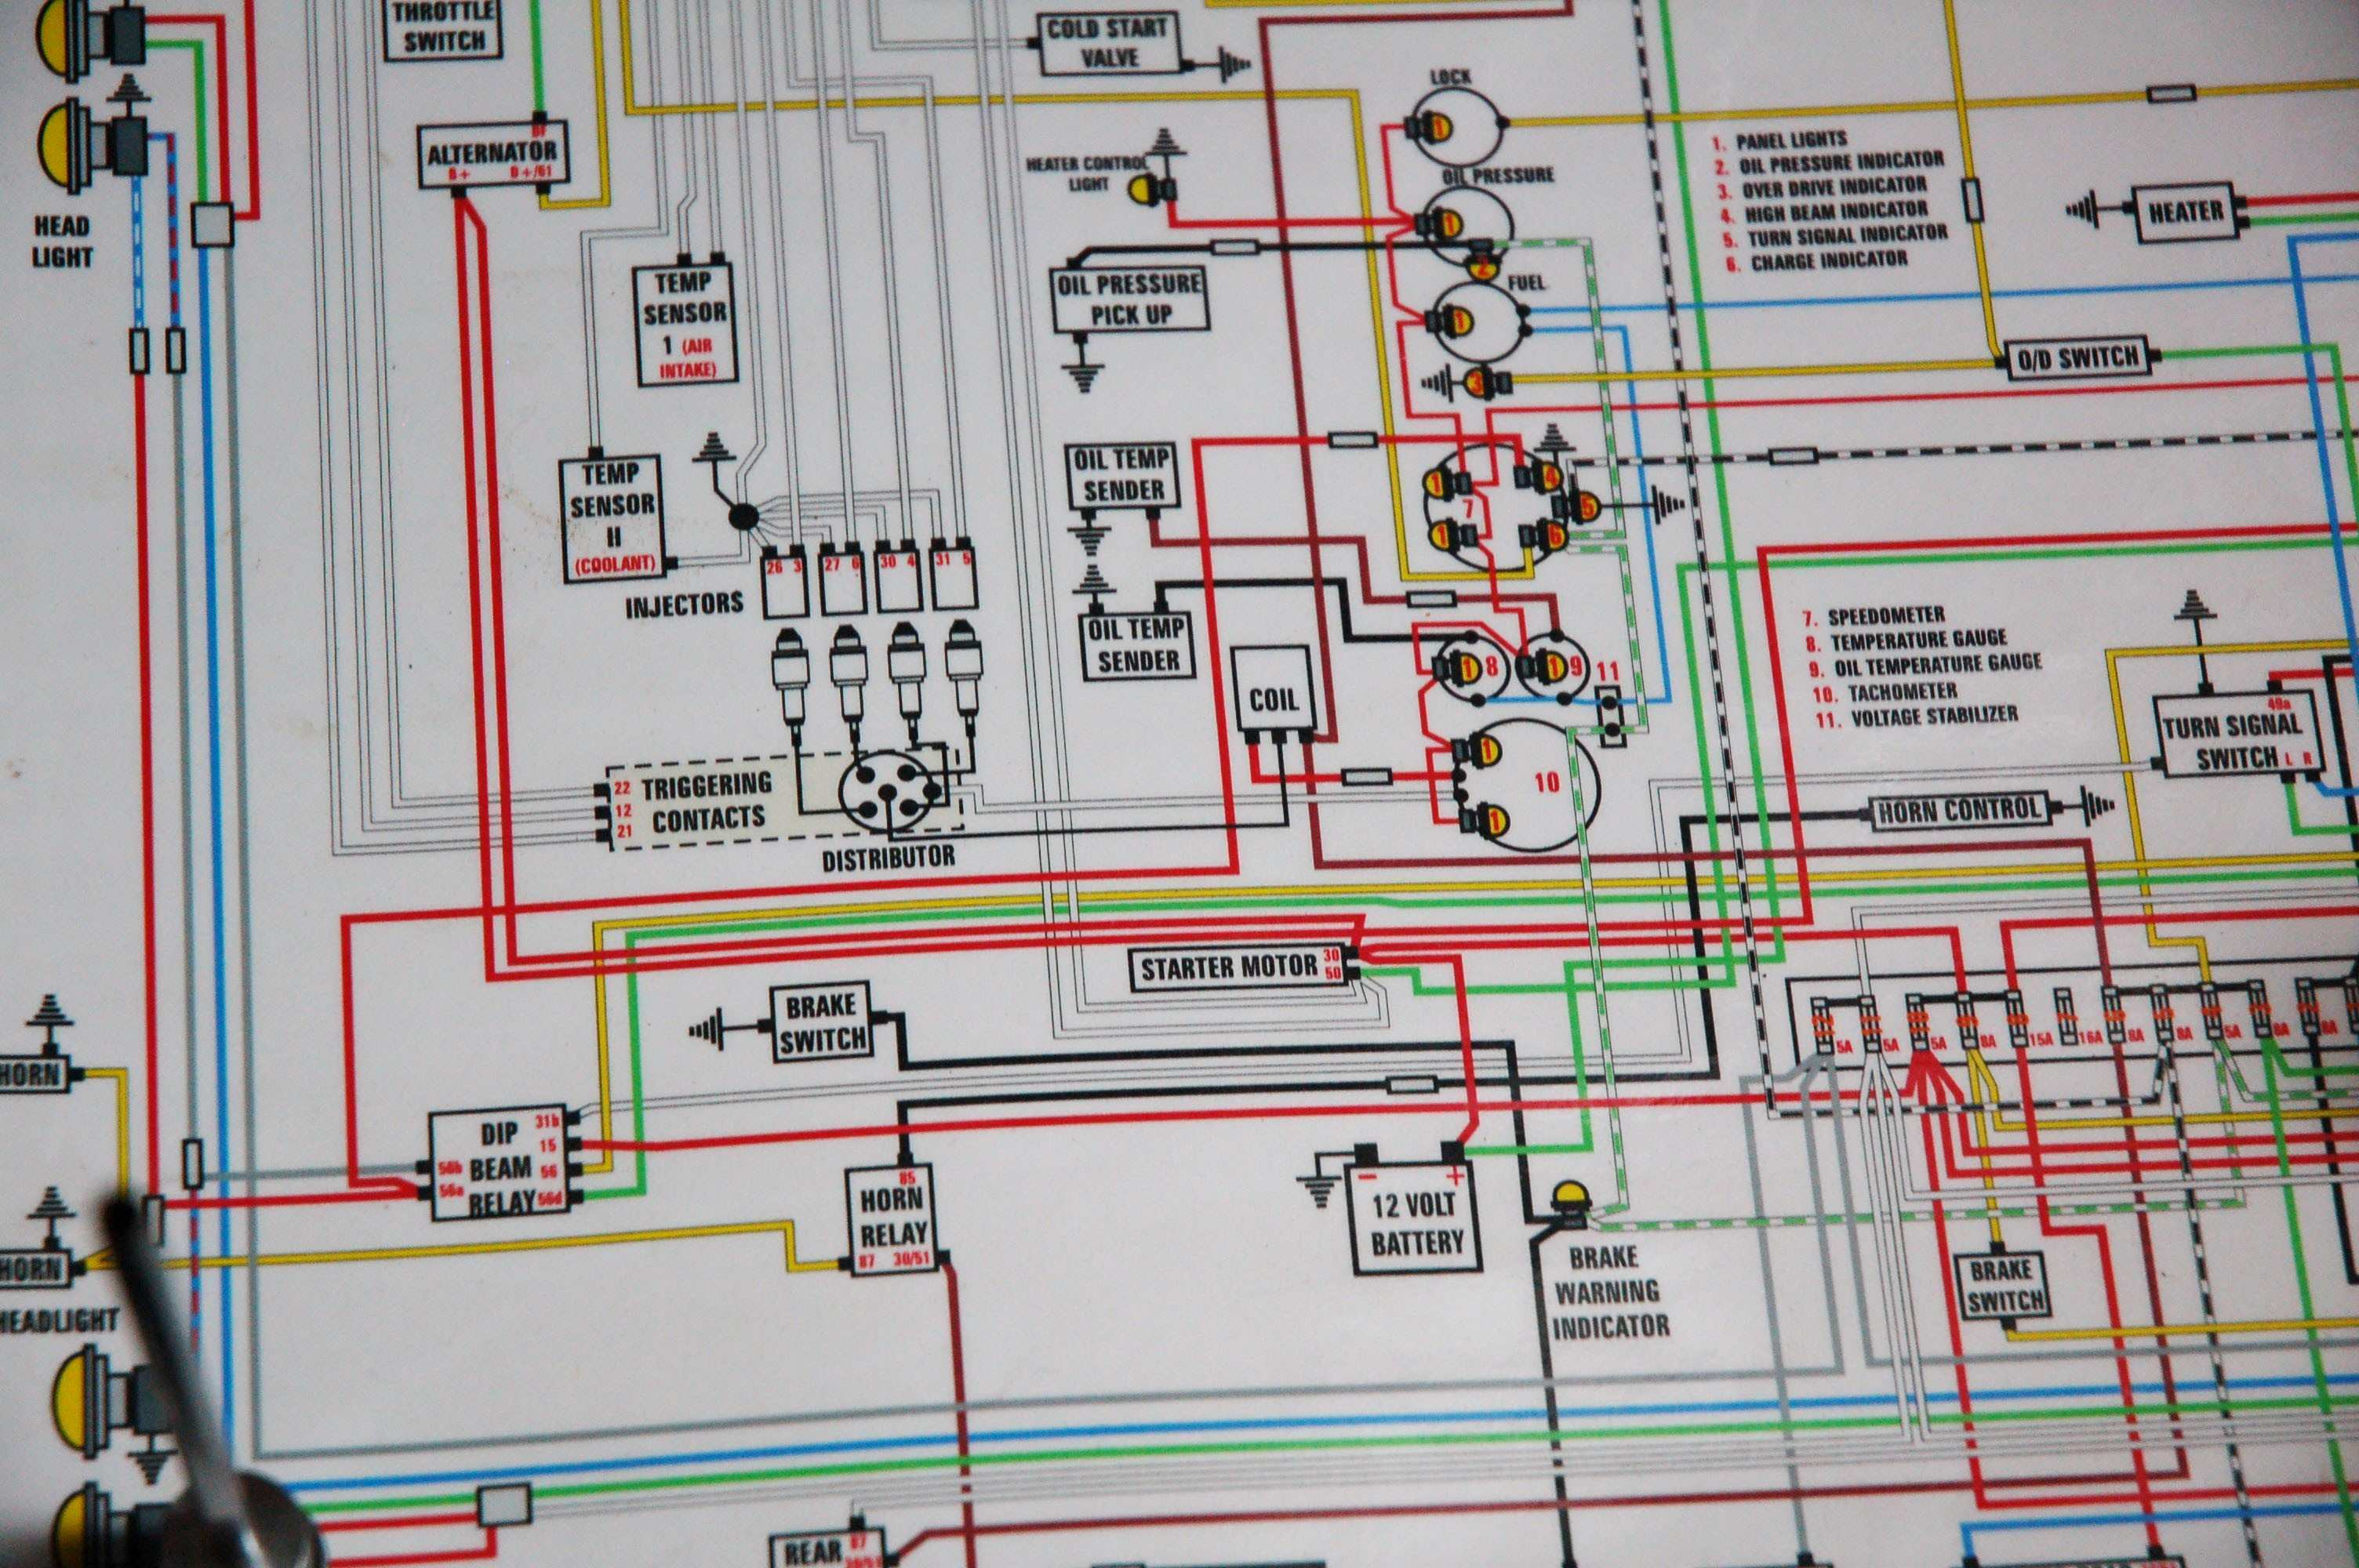 painless wiring diagram panel 6 1957 chevy painless wiring diagram